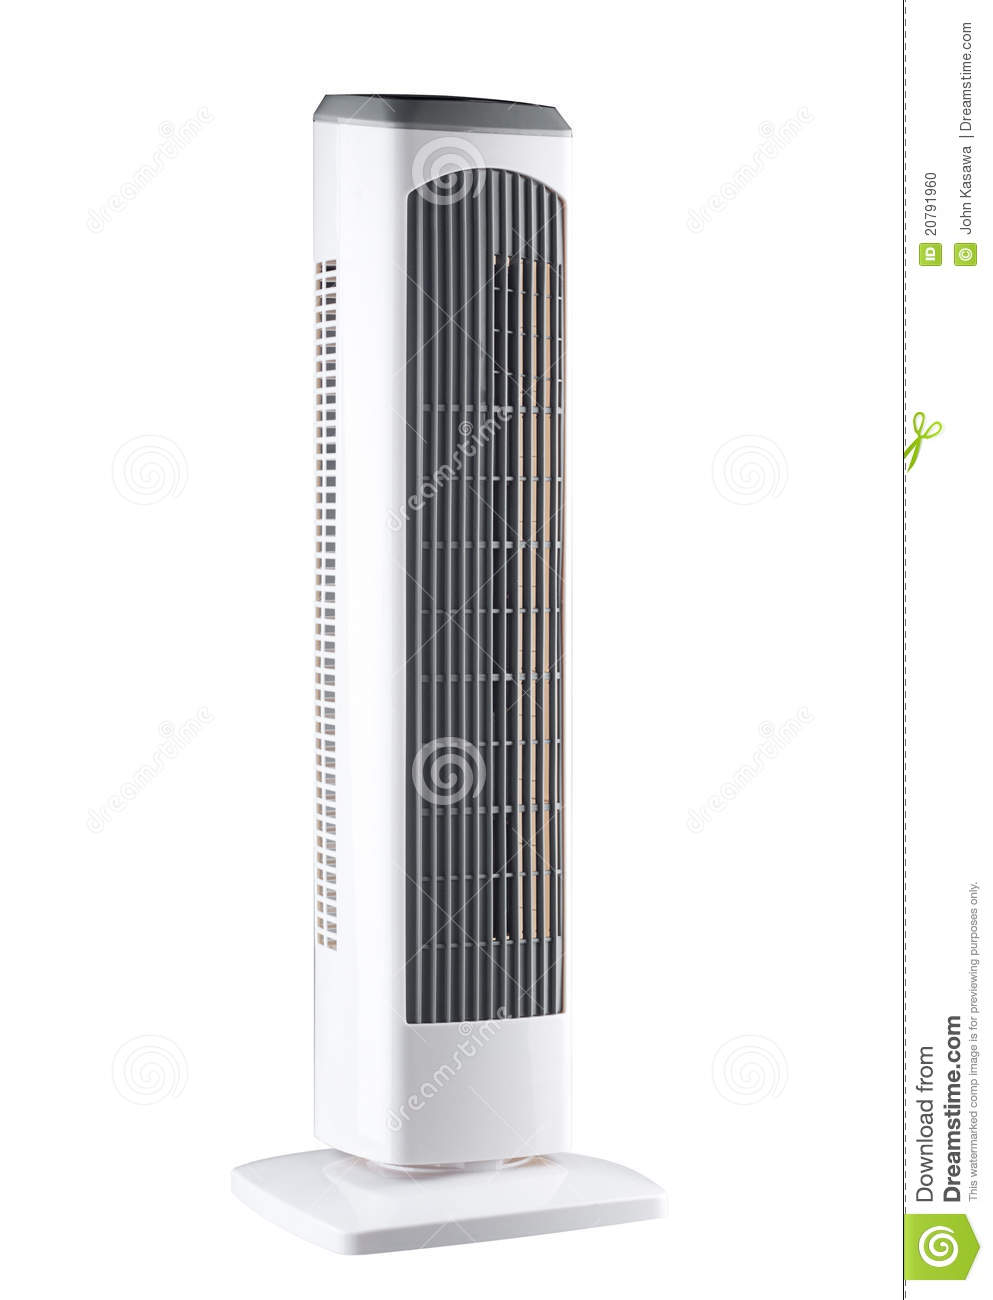 Portable Electric Fan And Air Conditioner Stock Photo